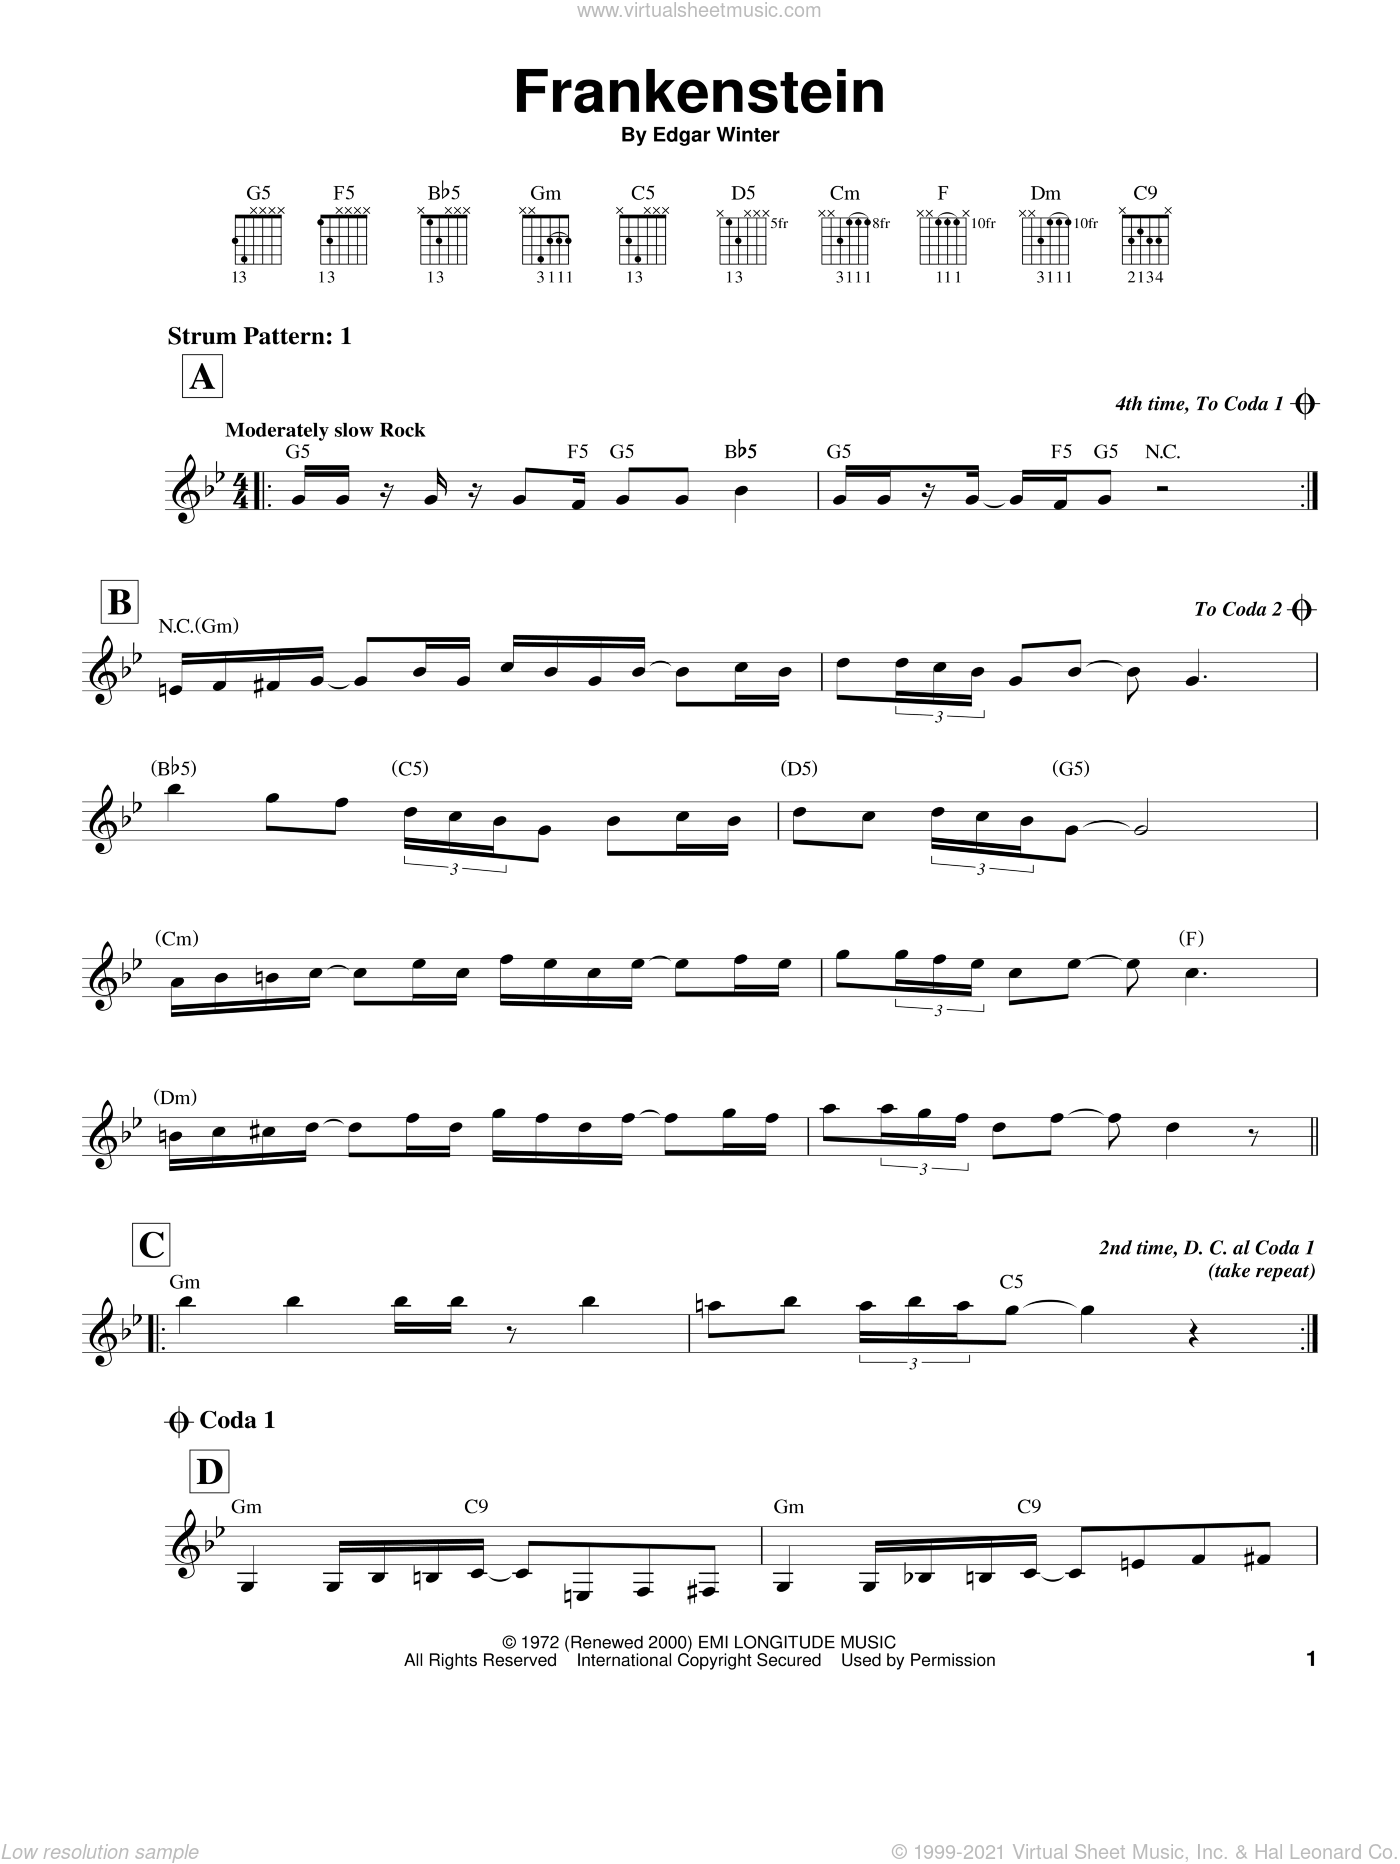 Frankenstein sheet music for guitar solo (chords) by Edgar Winter